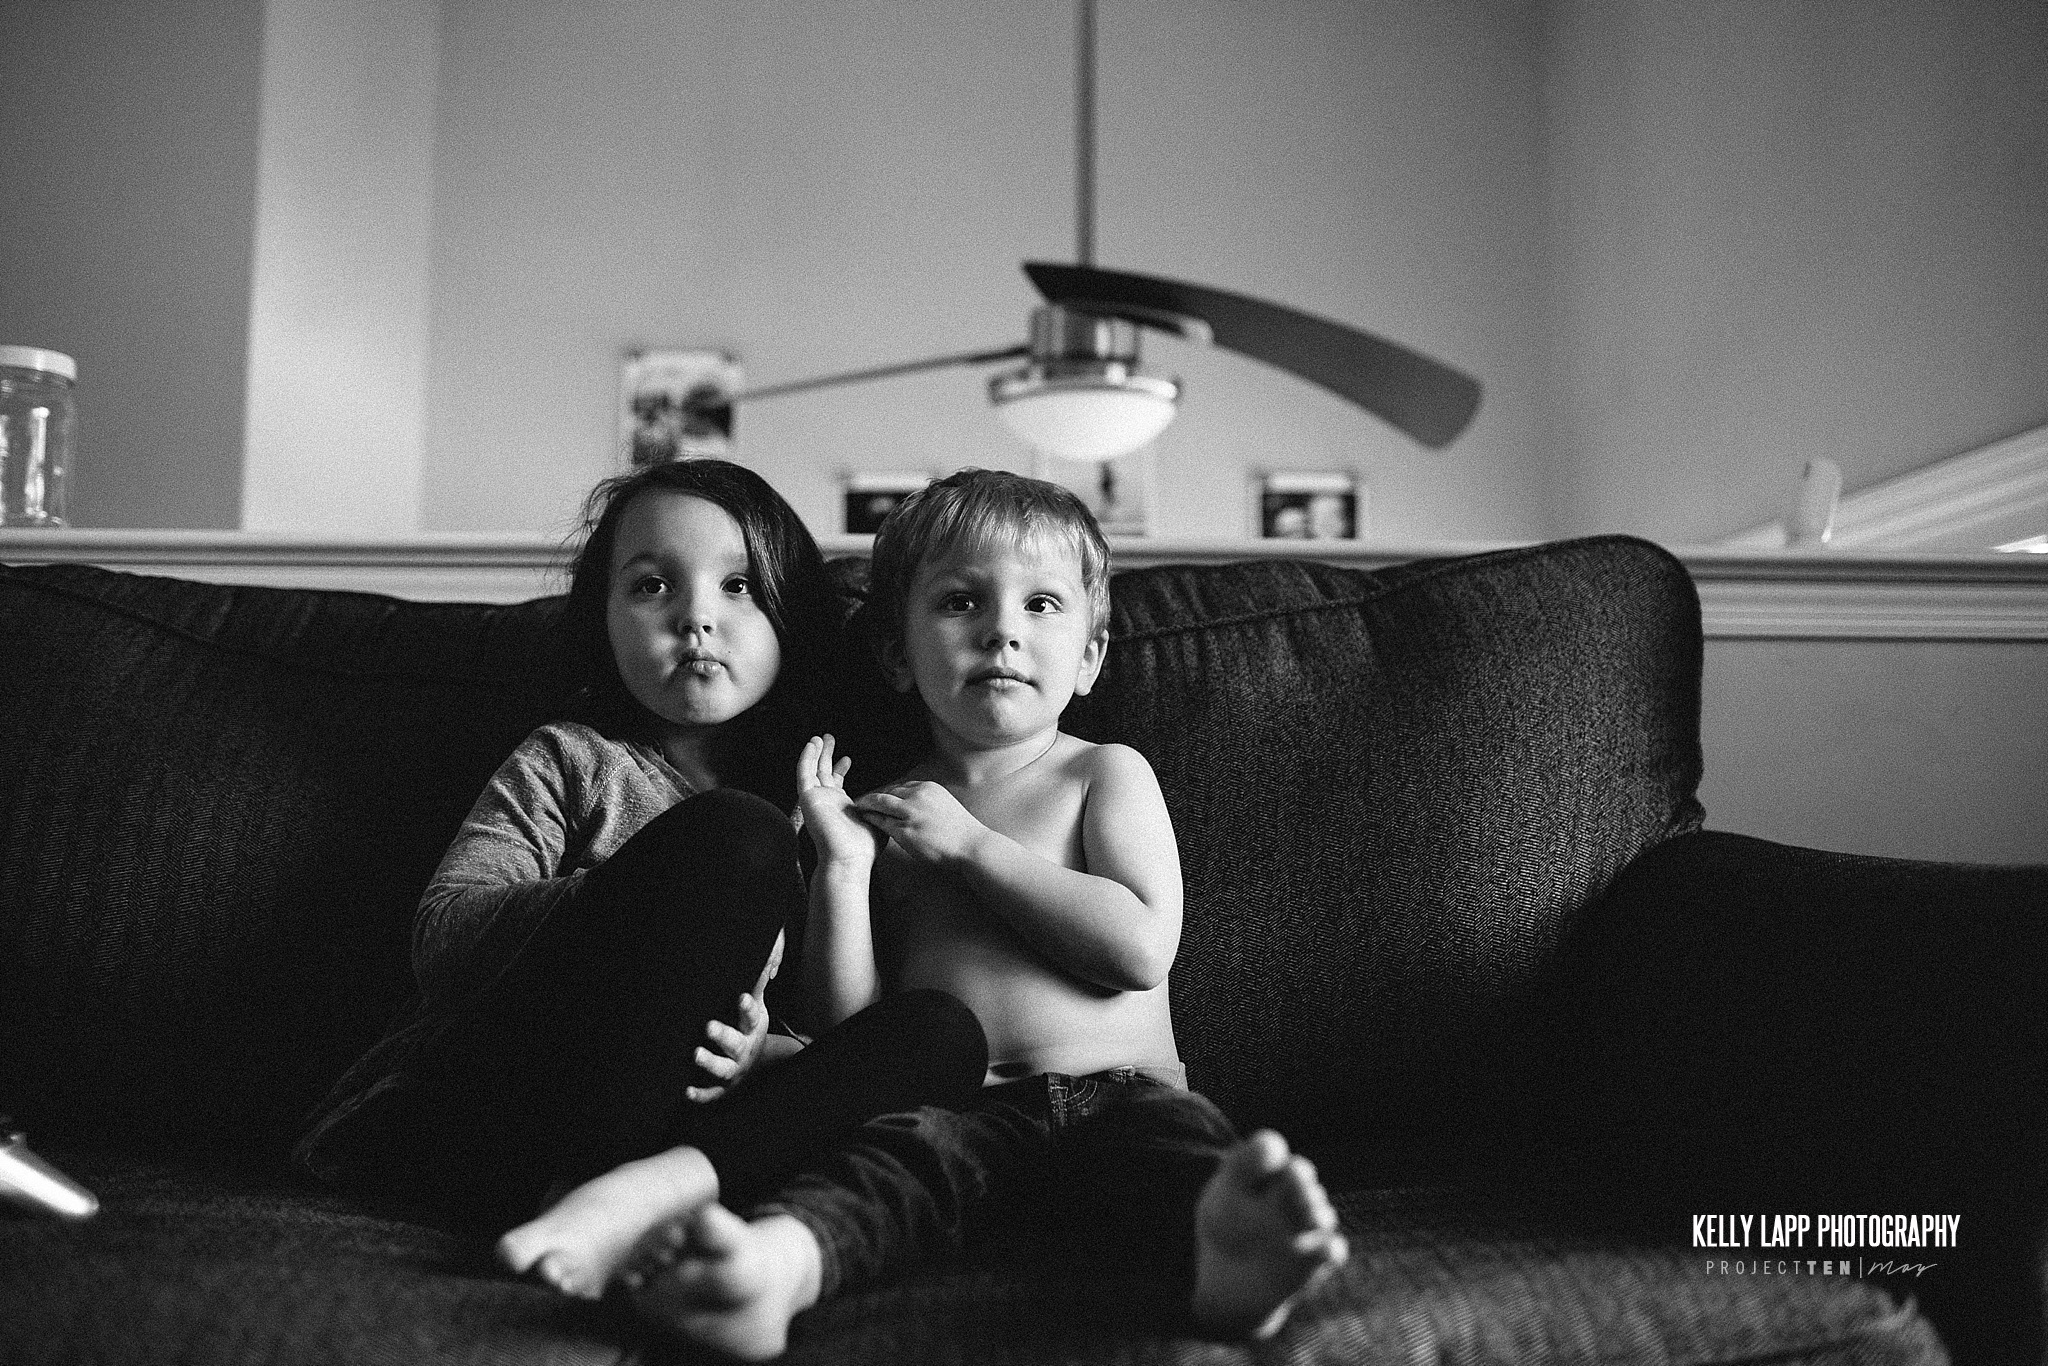 KellyLappPhotography_familyphotojournalism_project10may2017_38.JPG